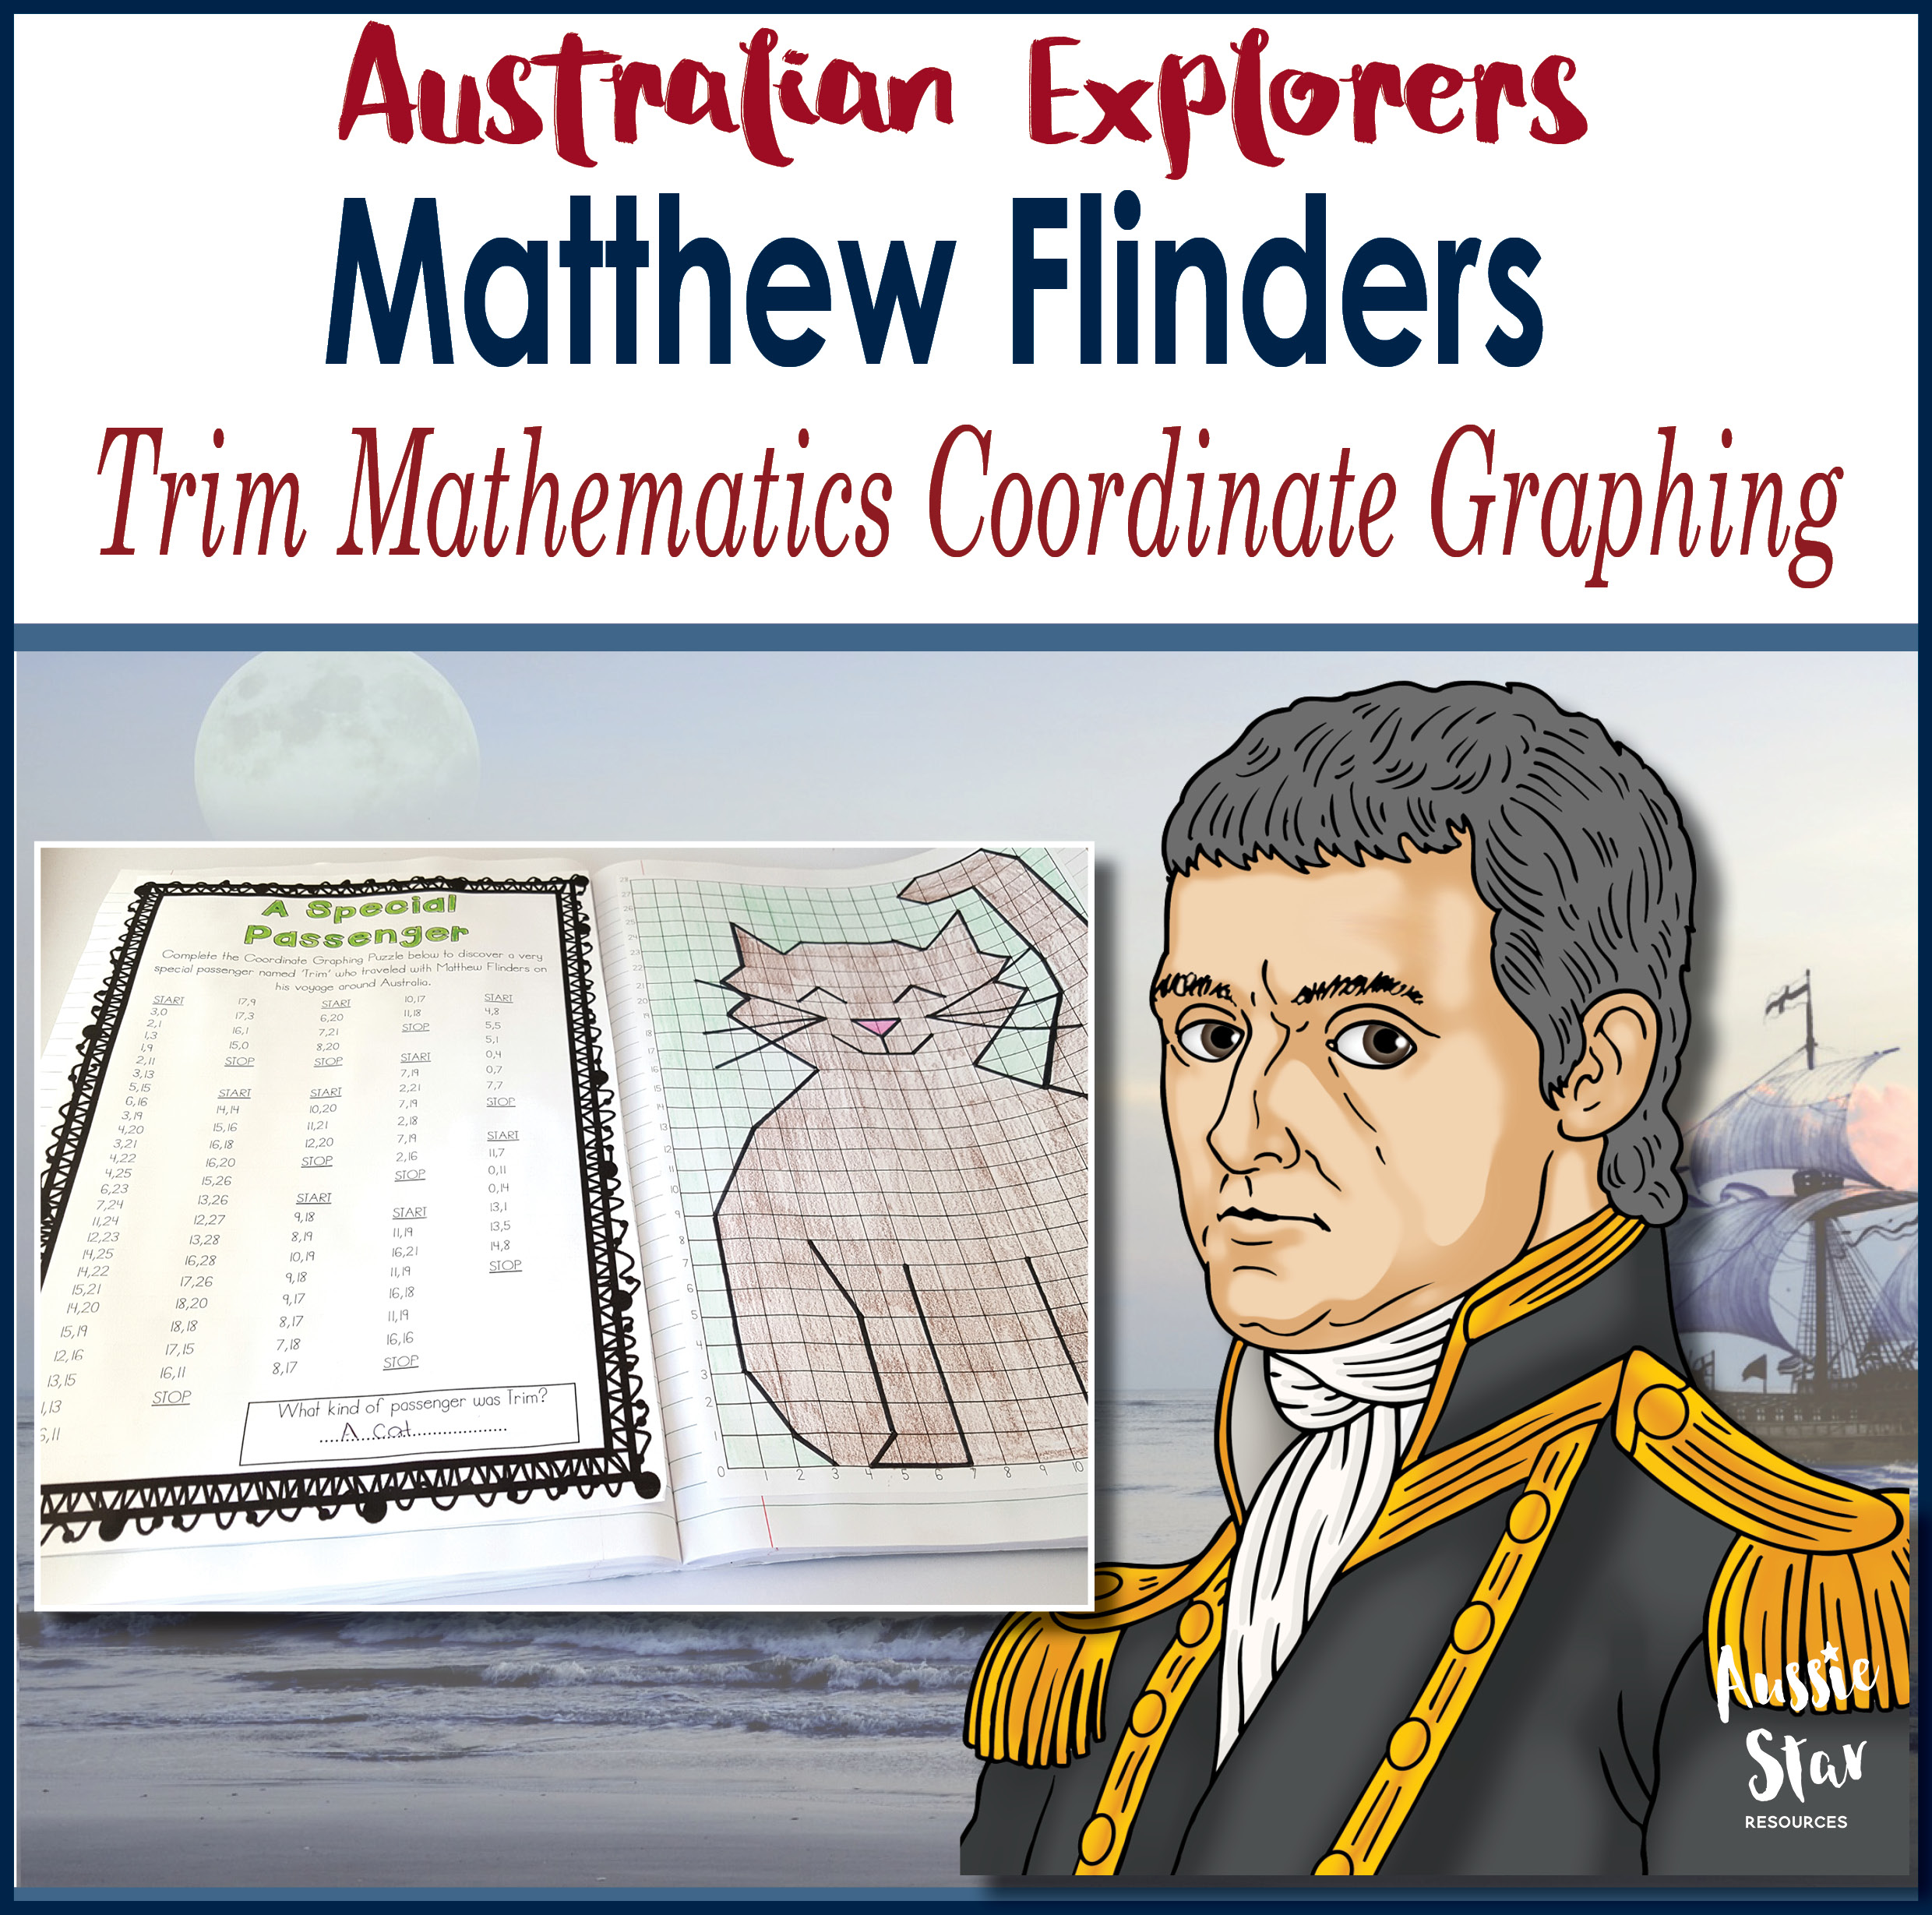 Matthew Flinders Trim Maths Grid Coordinates Activity